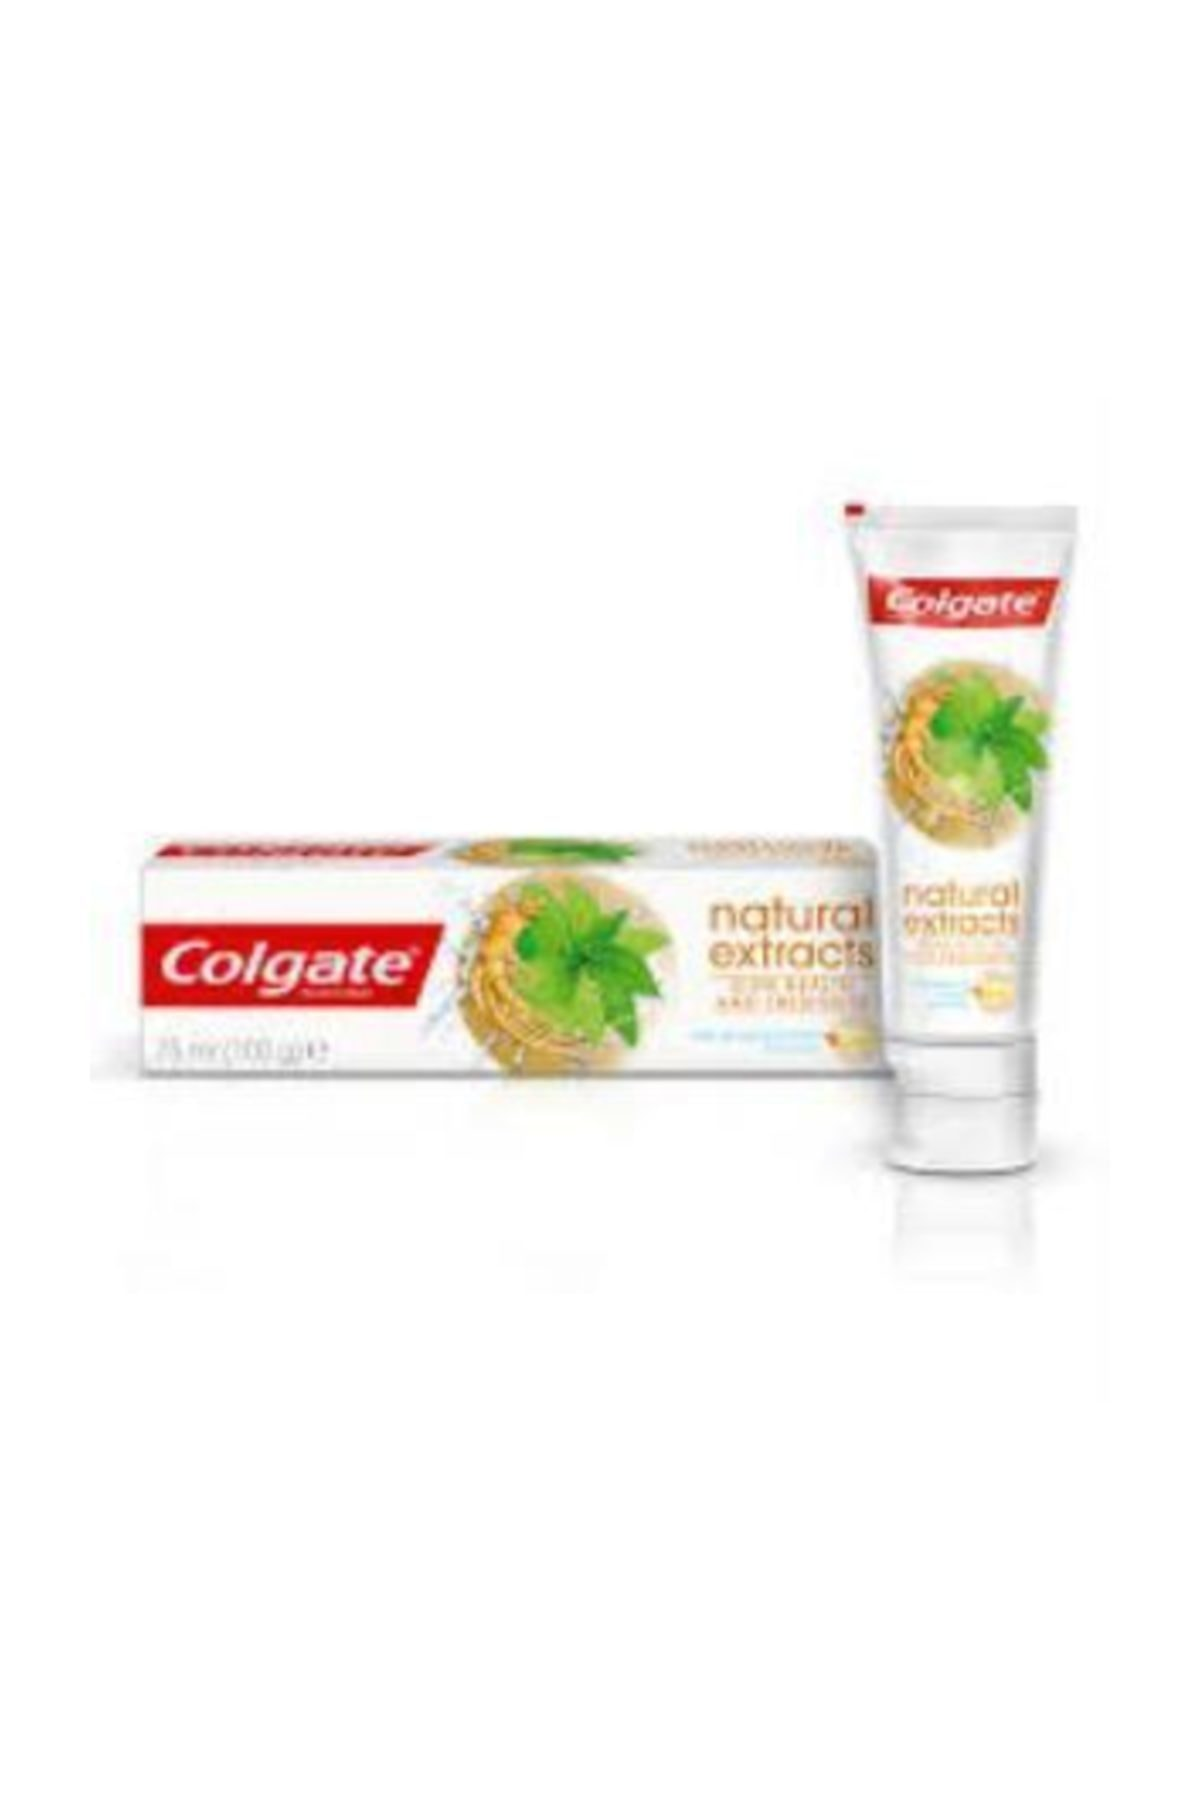 Colgate Natural Extracts Ginseng & Mint Toothpaste Diş Macunu 75 ml 2